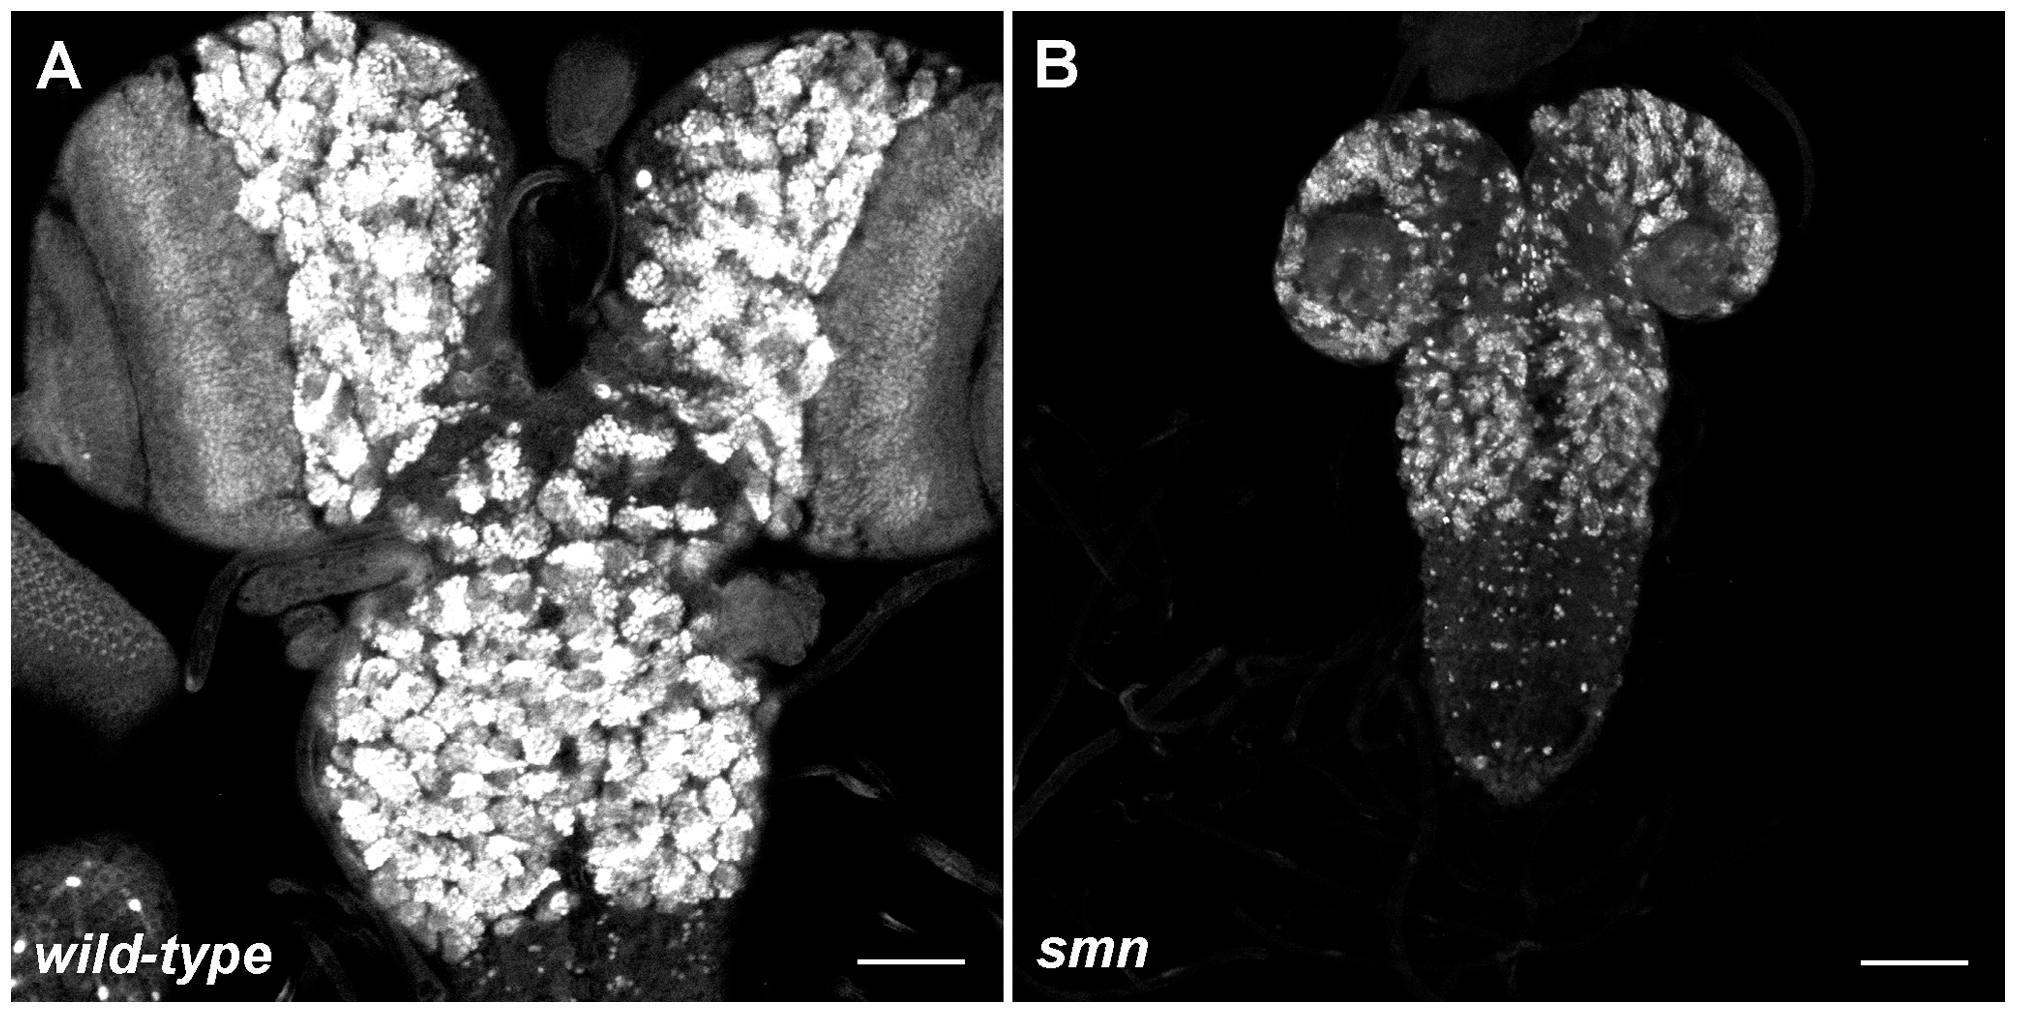 Growth defects in the SMN mutant CNS.